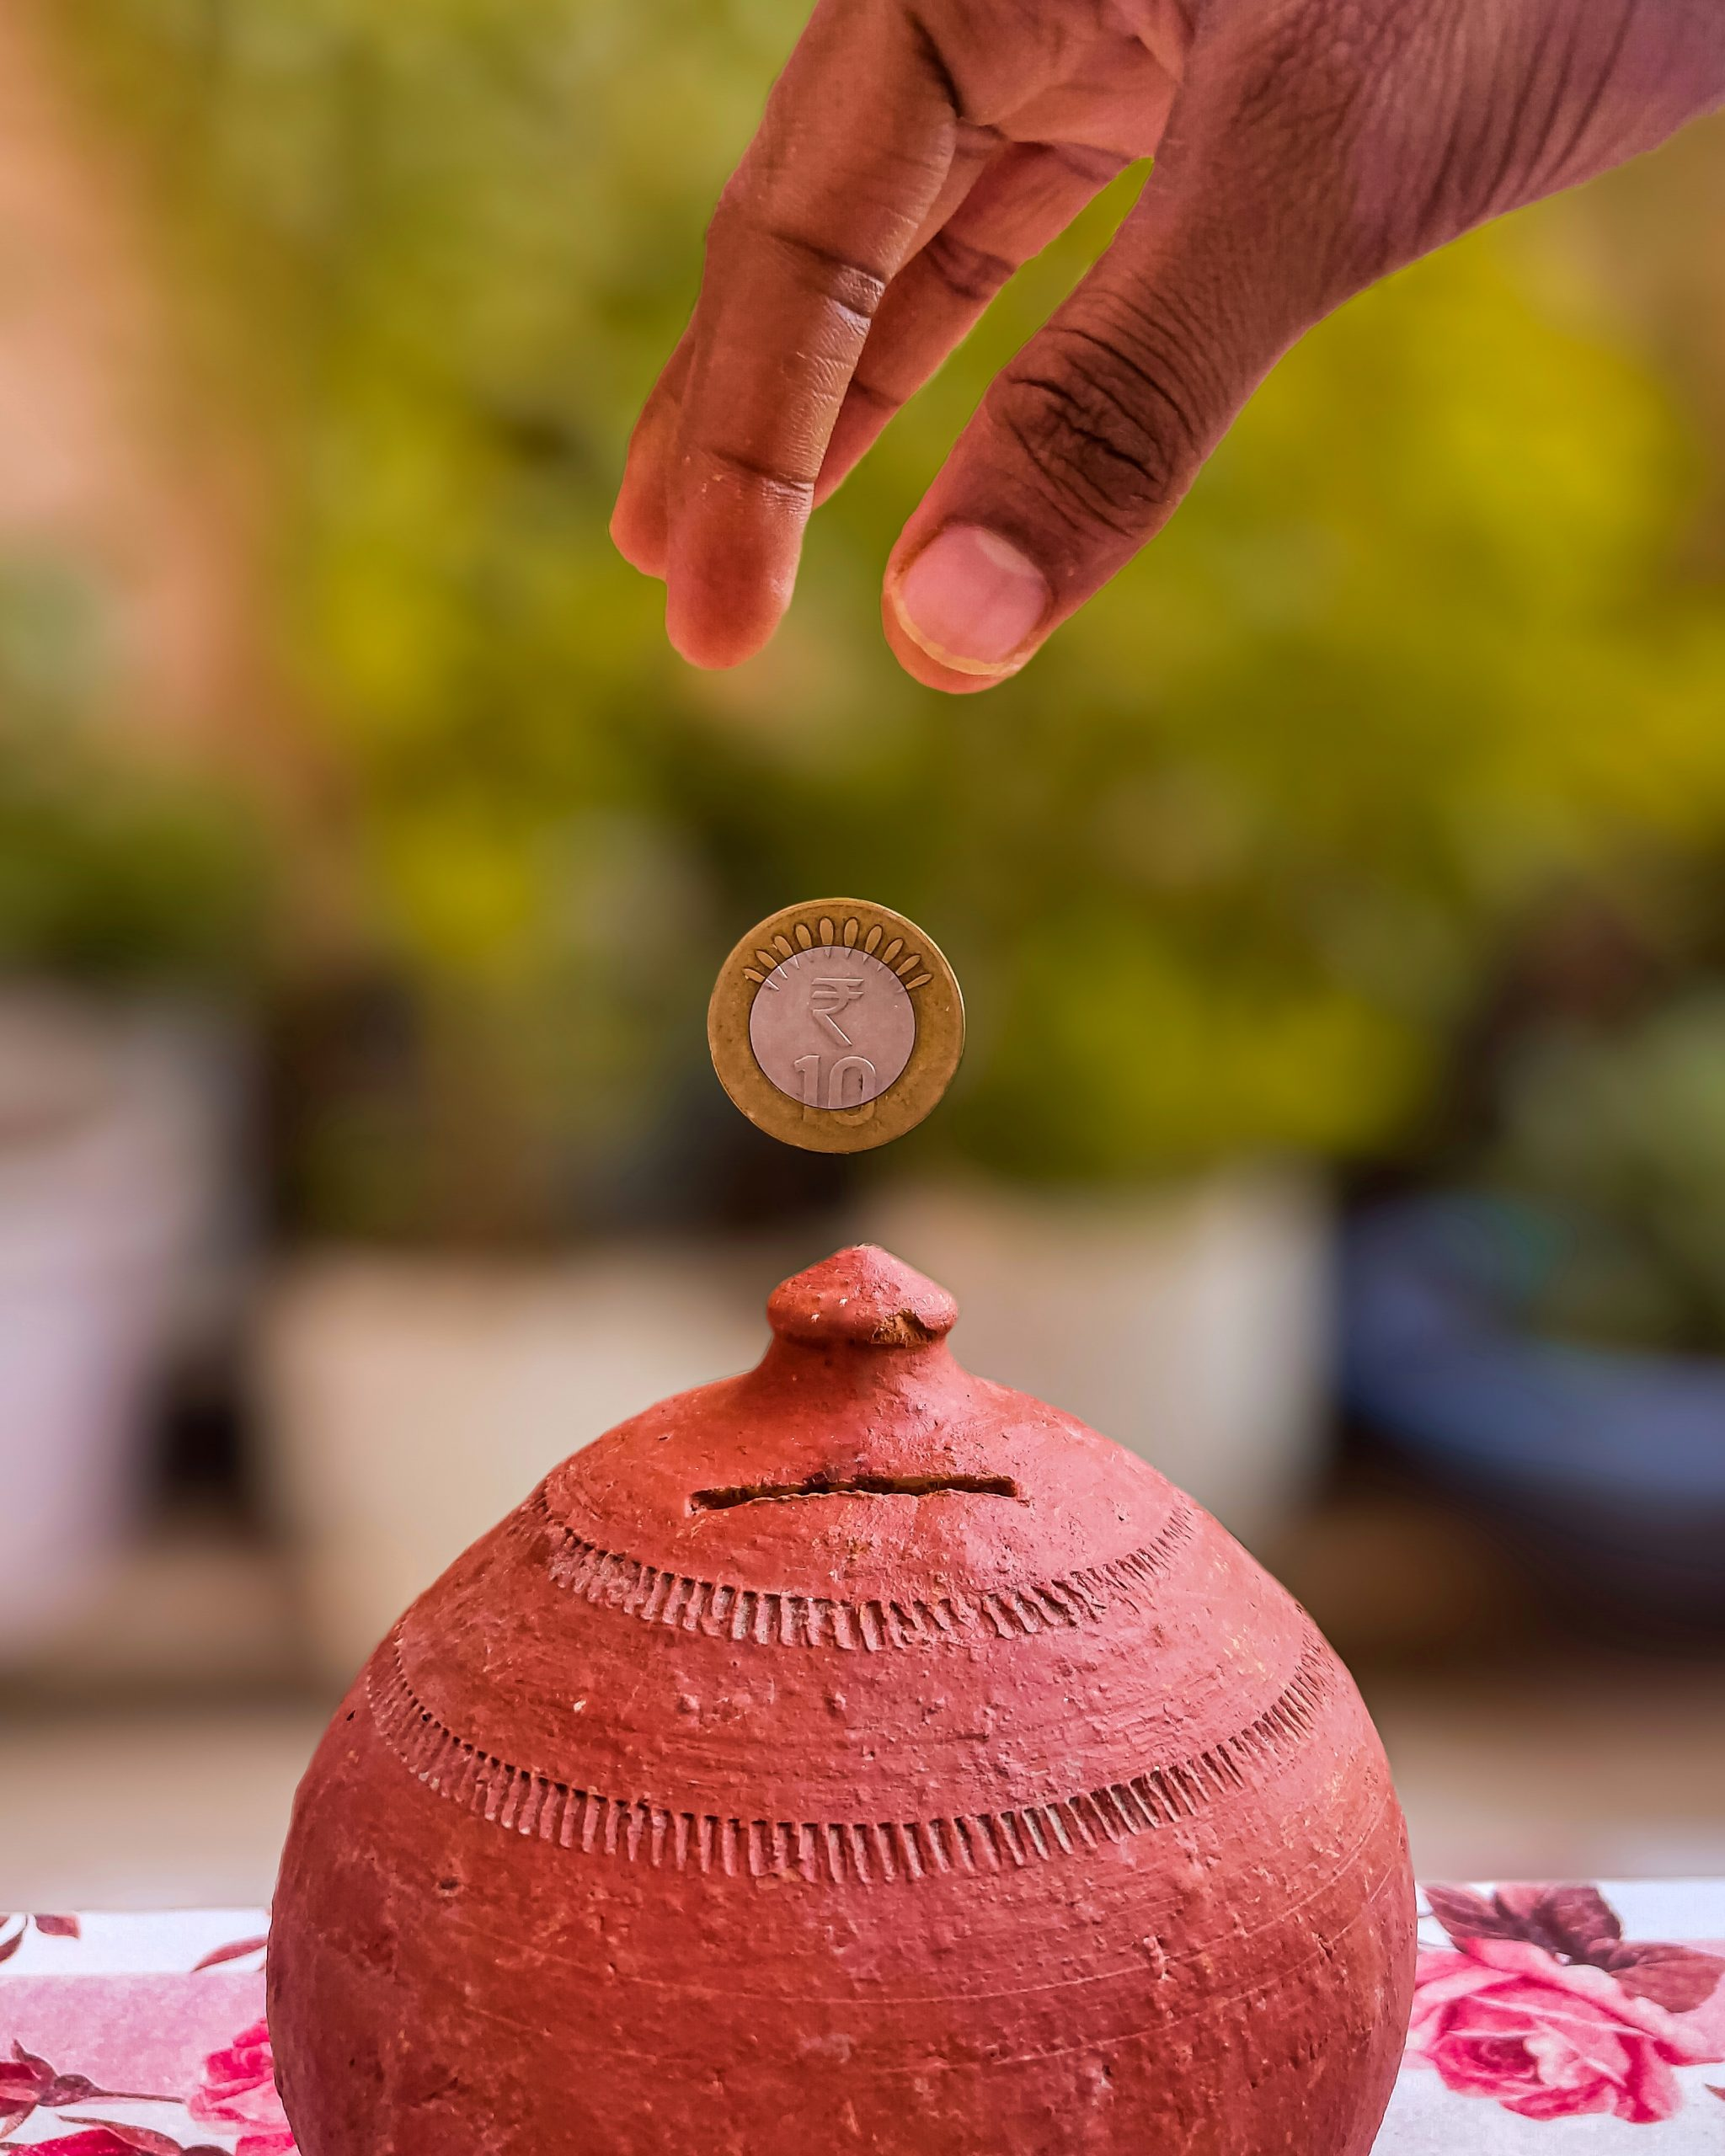 Putting coin in money bank